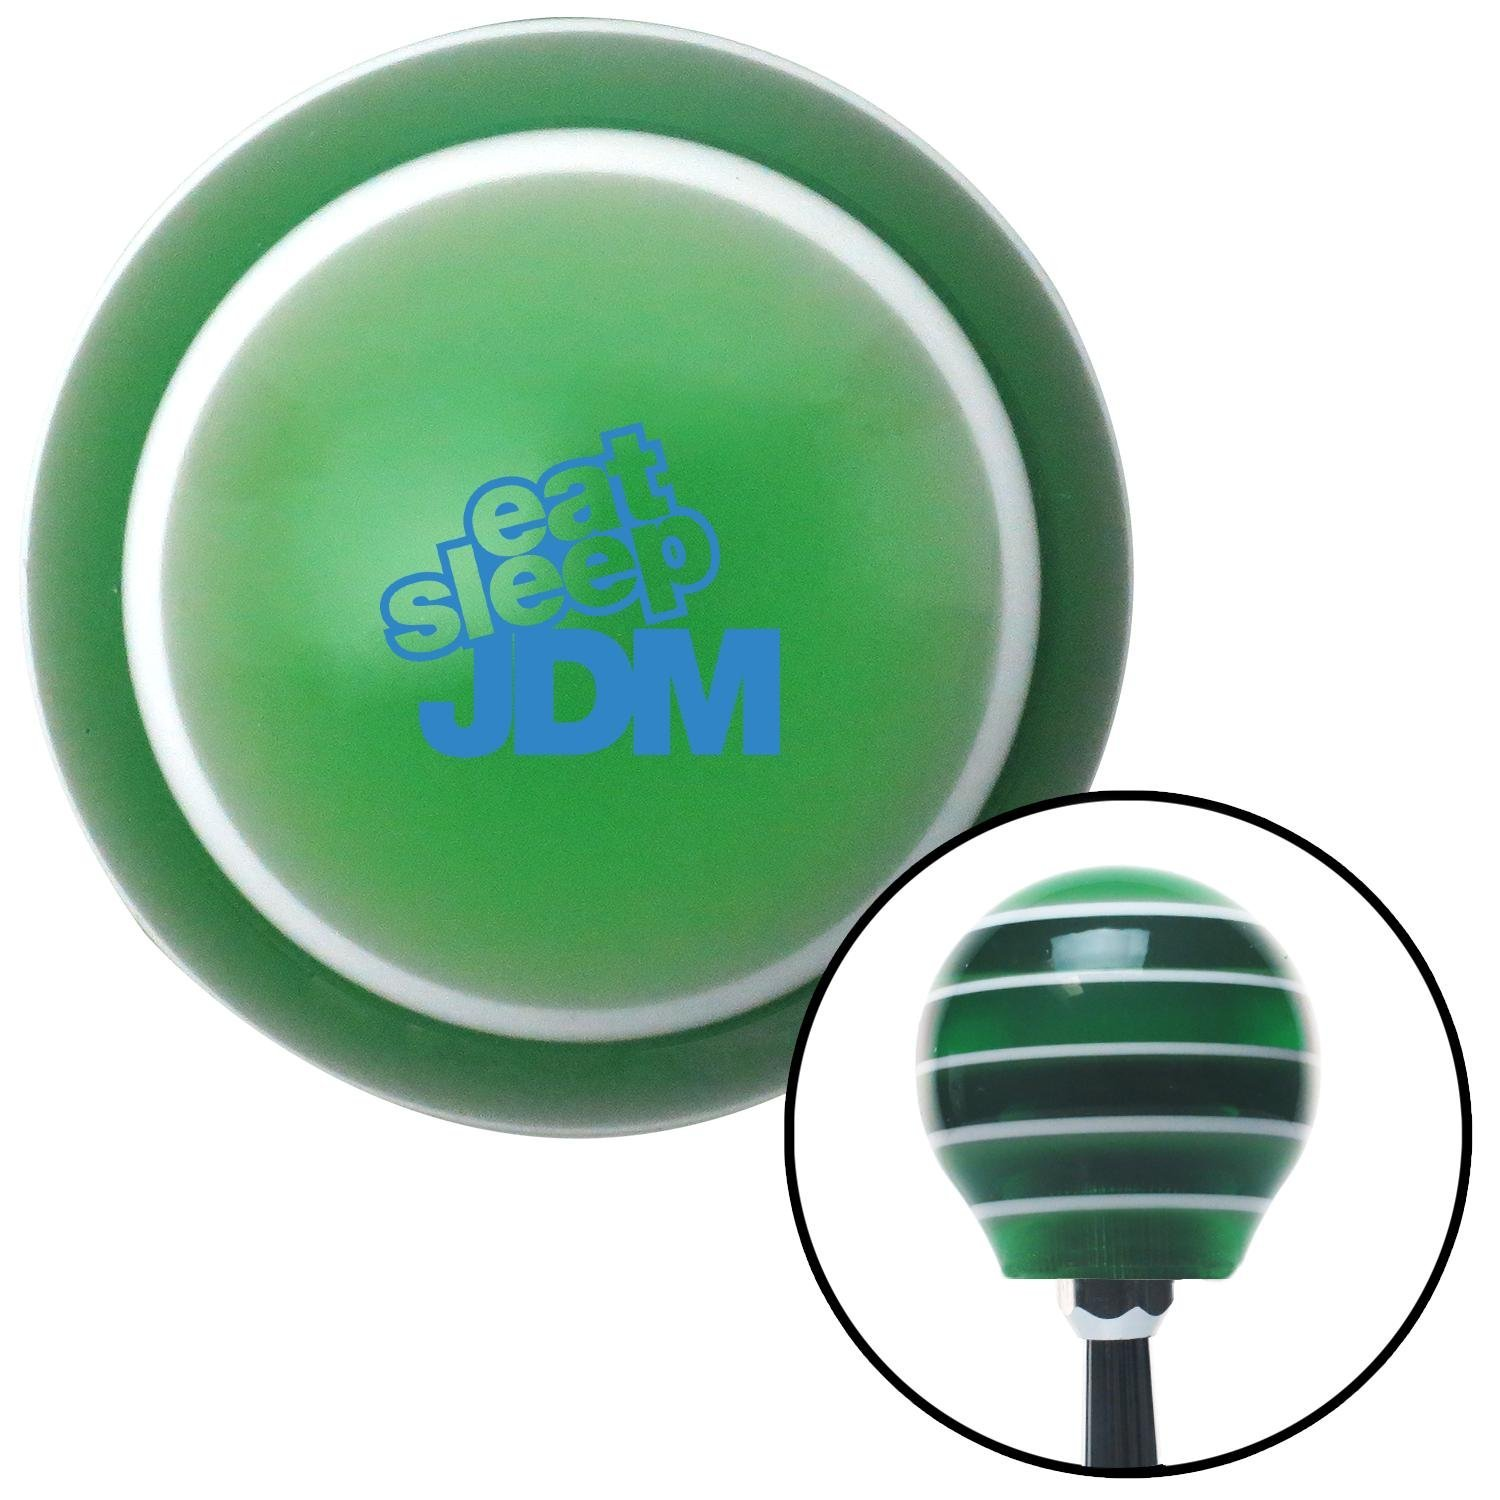 American Shifter 275411 Shift Knob Blue Eat Sleep JDM Text Green Stripe with M16 x 1.5 Insert